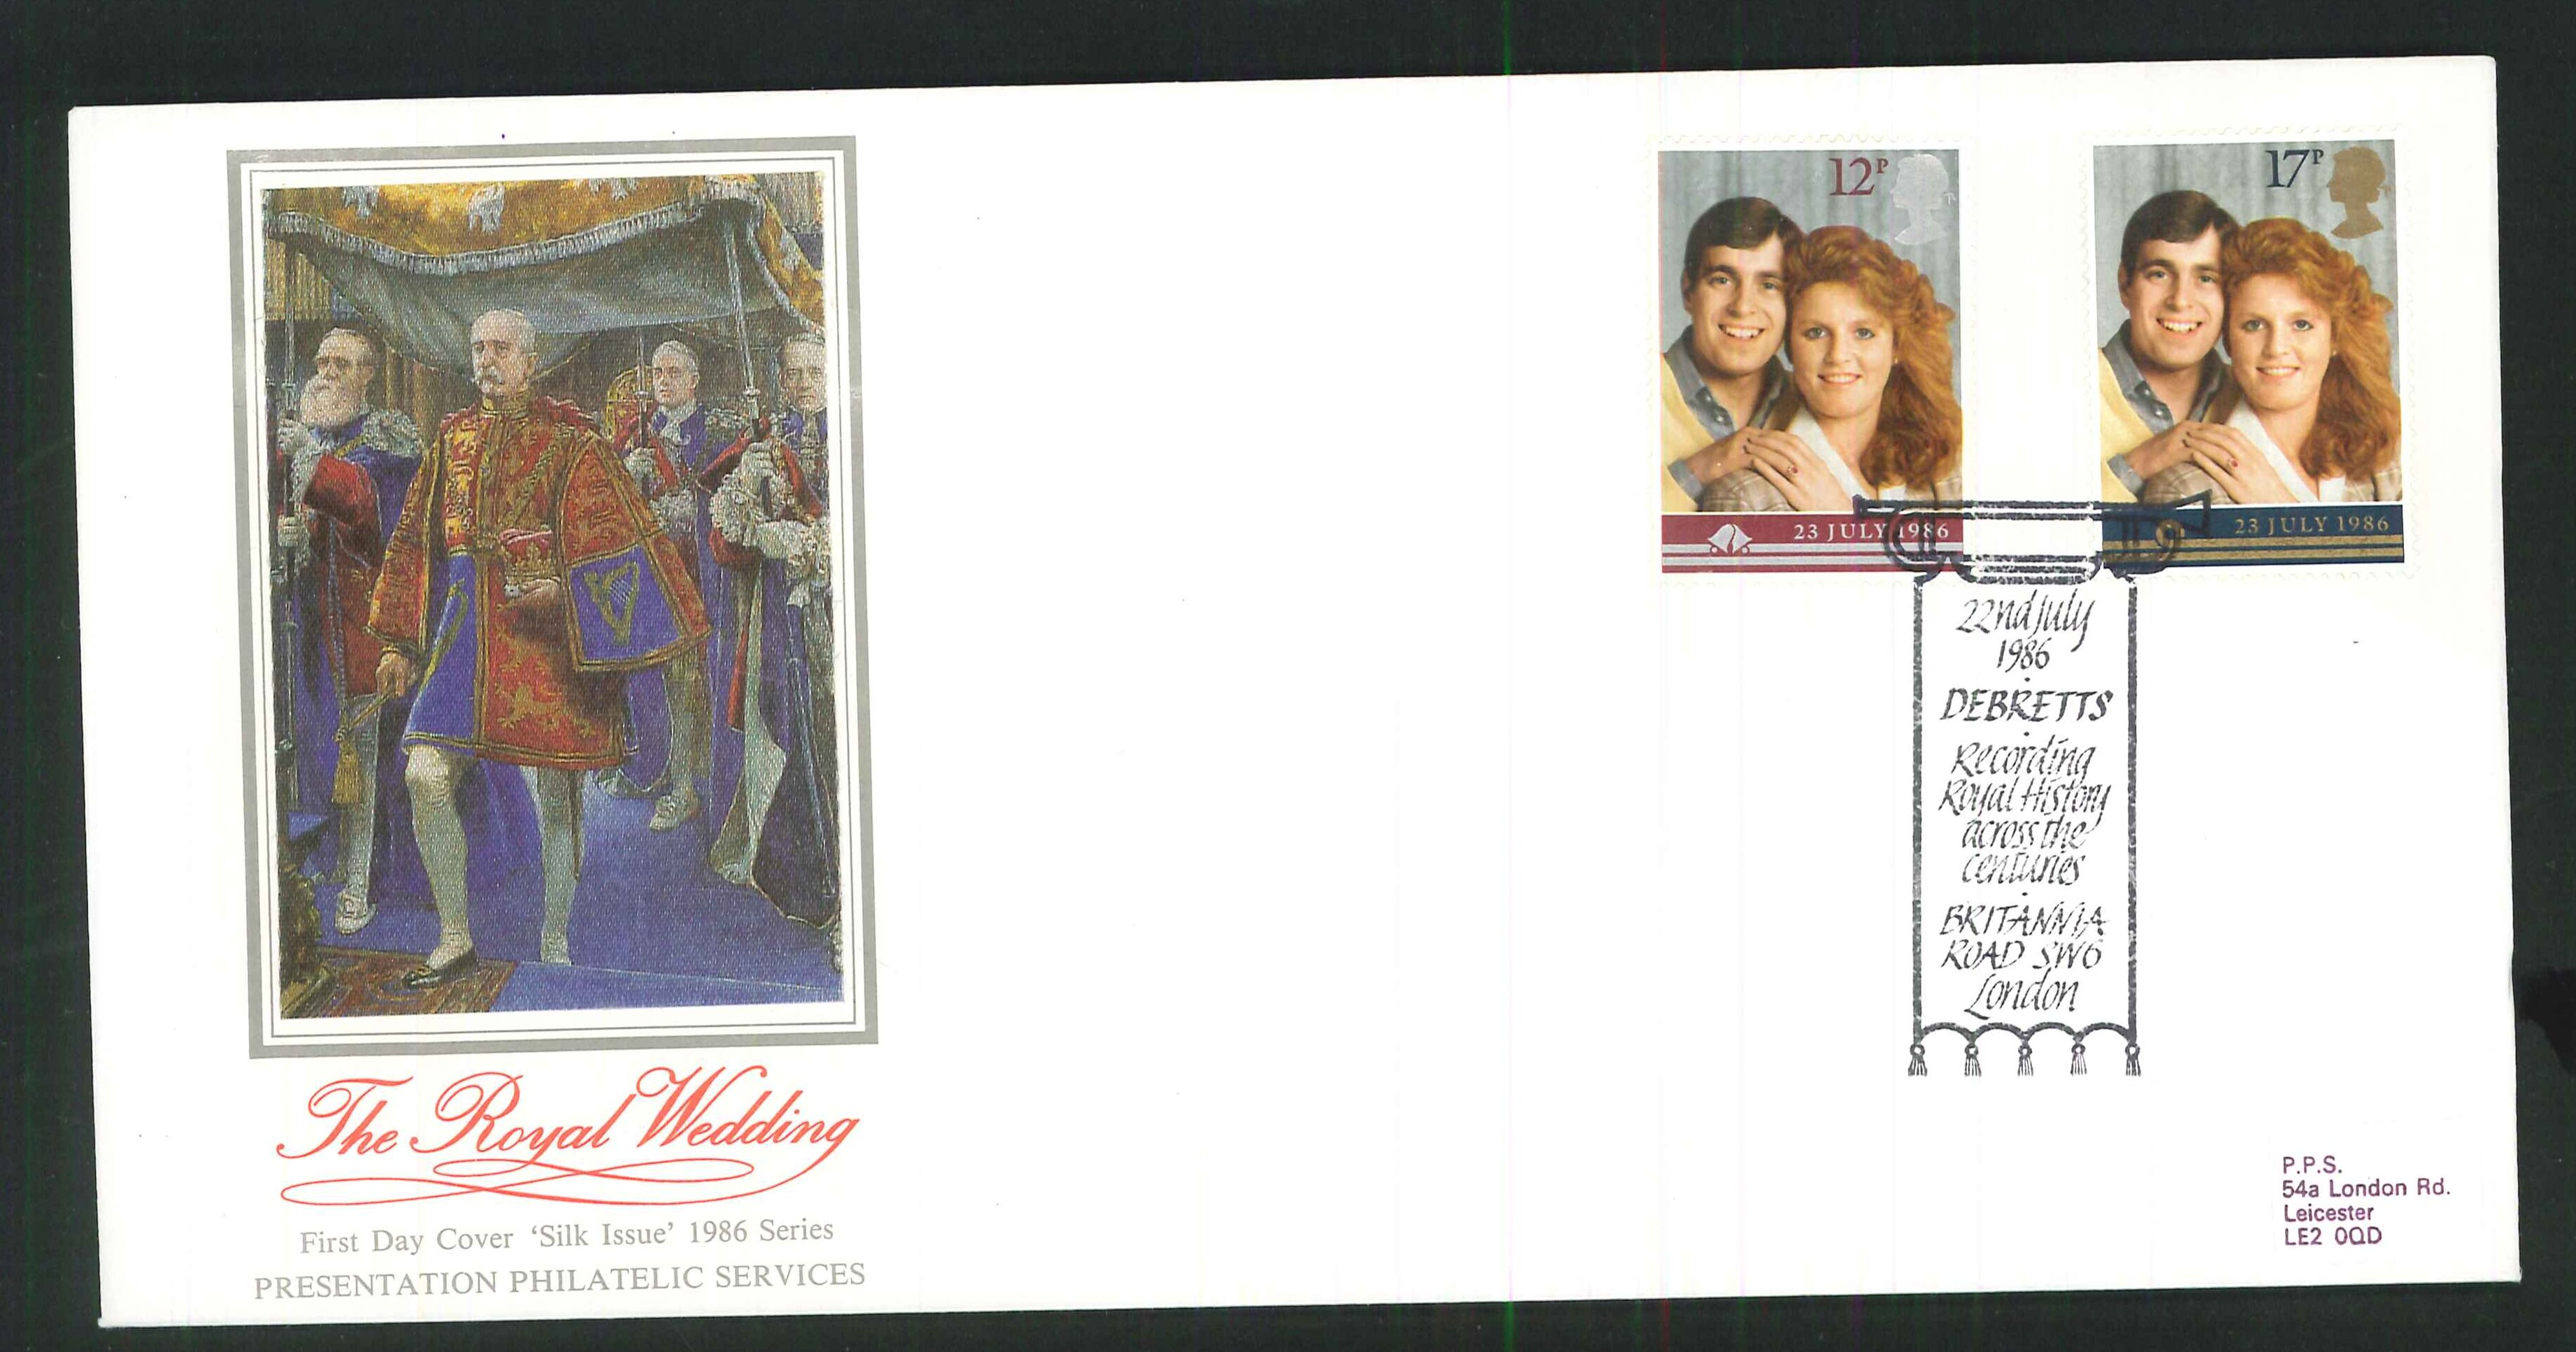 1986 - Royal Wedding First Day Cover- Debretts Recording Royal History Postmark